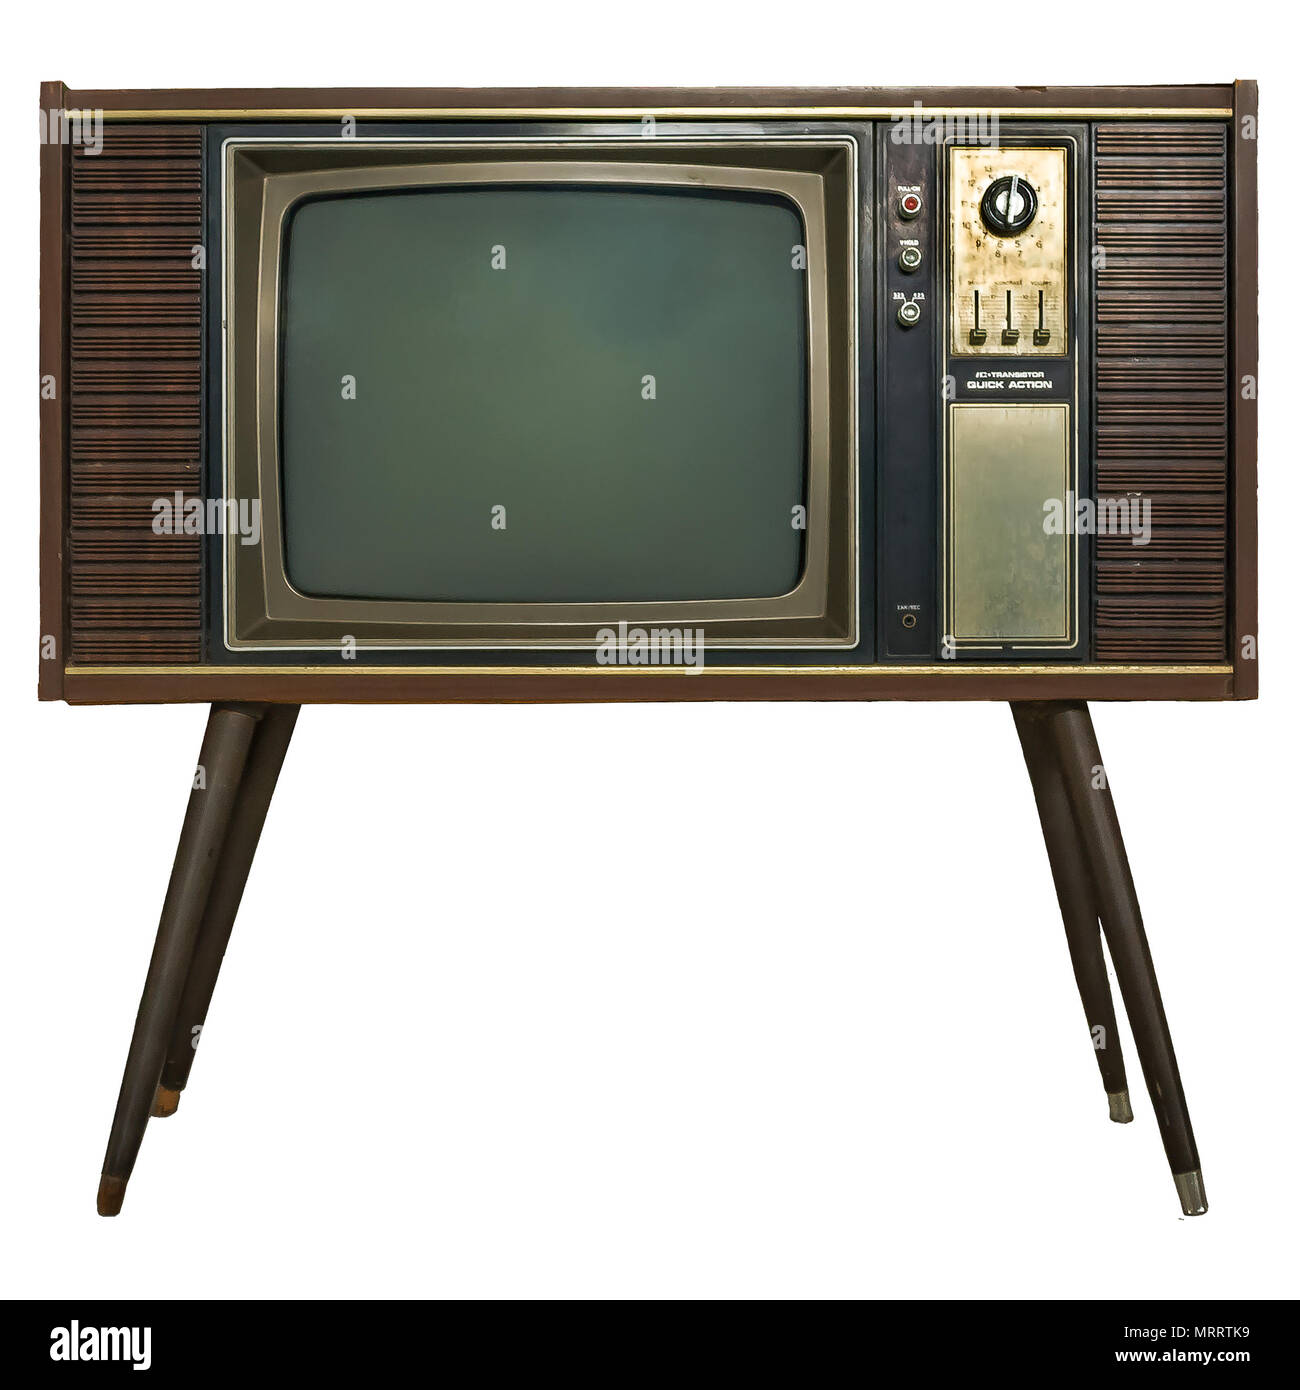 Retro Tv Cabinet Vintage Tv Old Retro Tv Set In Wooden Cabinet On Isolated White